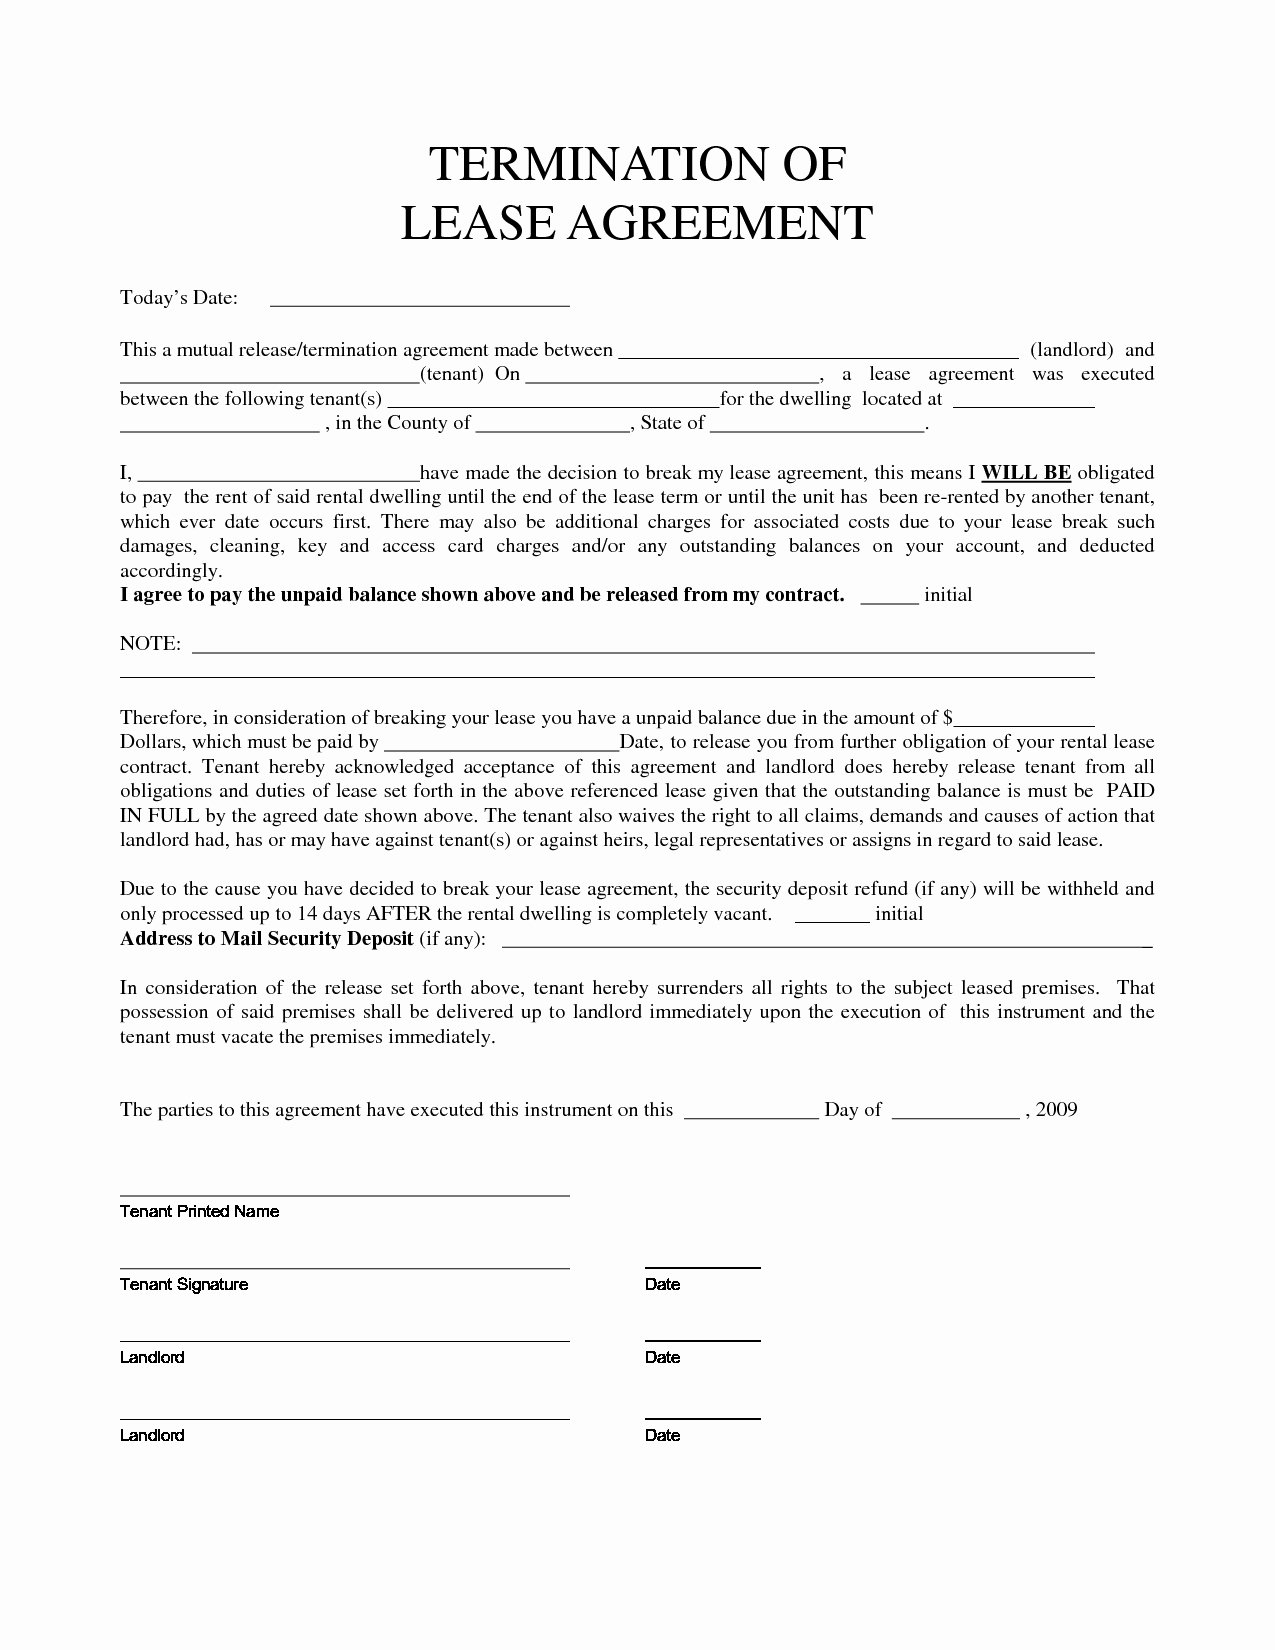 Net 30 Terms Agreement Template Luxury Termination and Release Agreement Template Exclusive